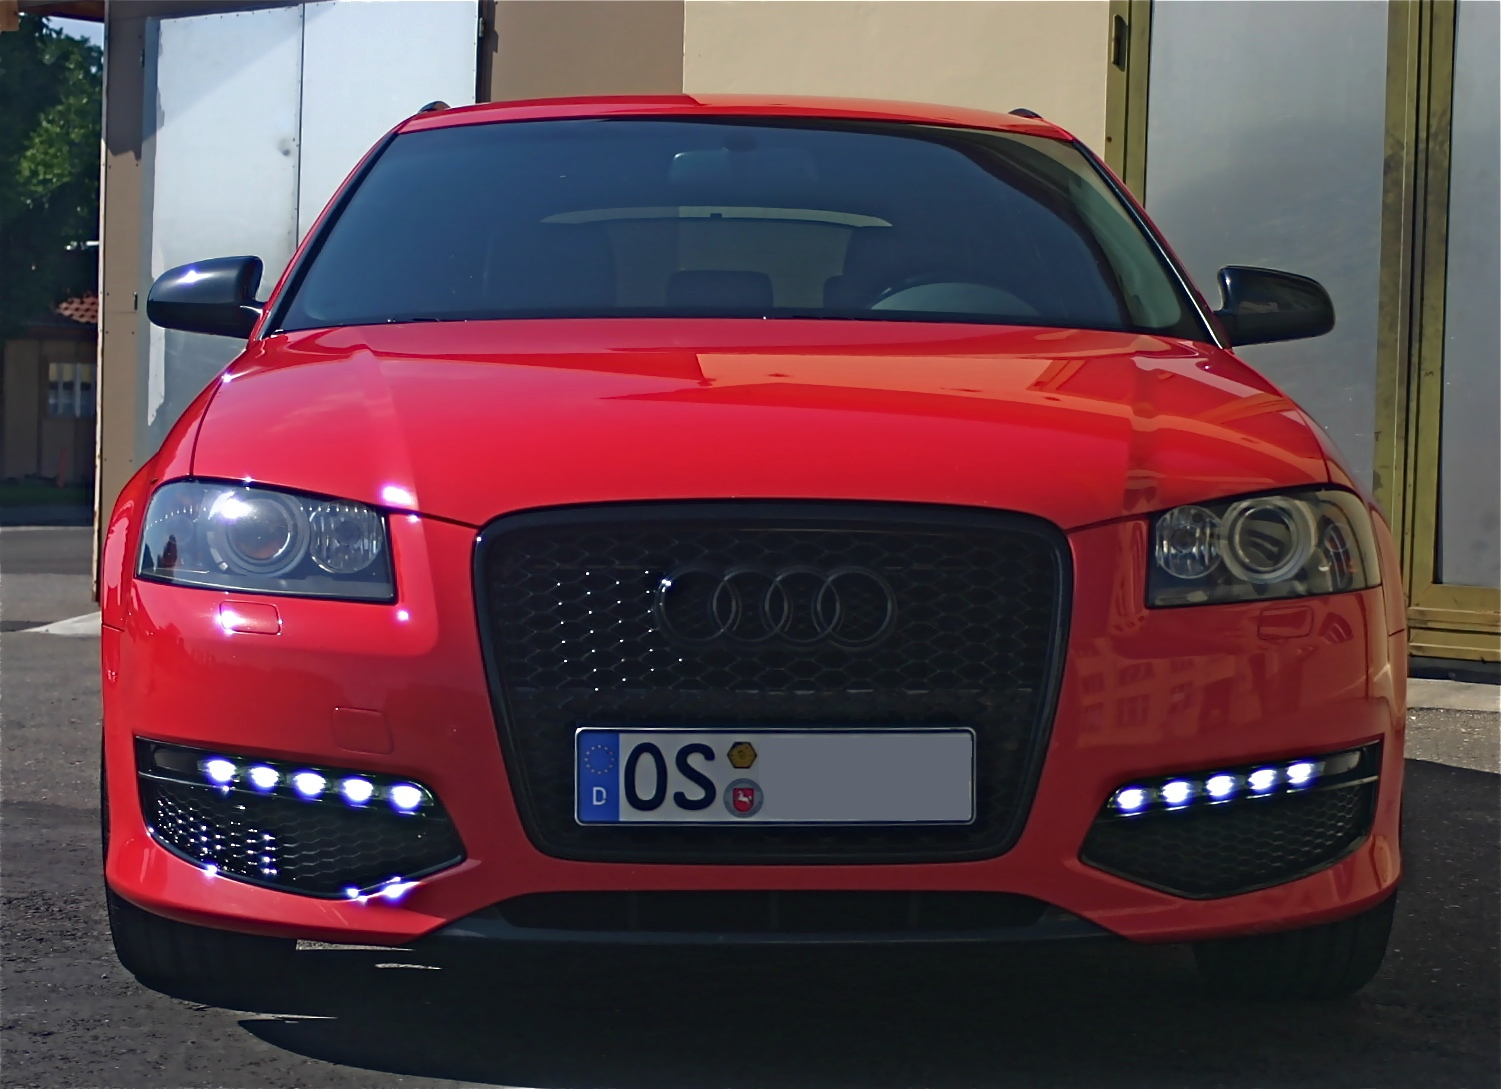 Audi a3 logo lights